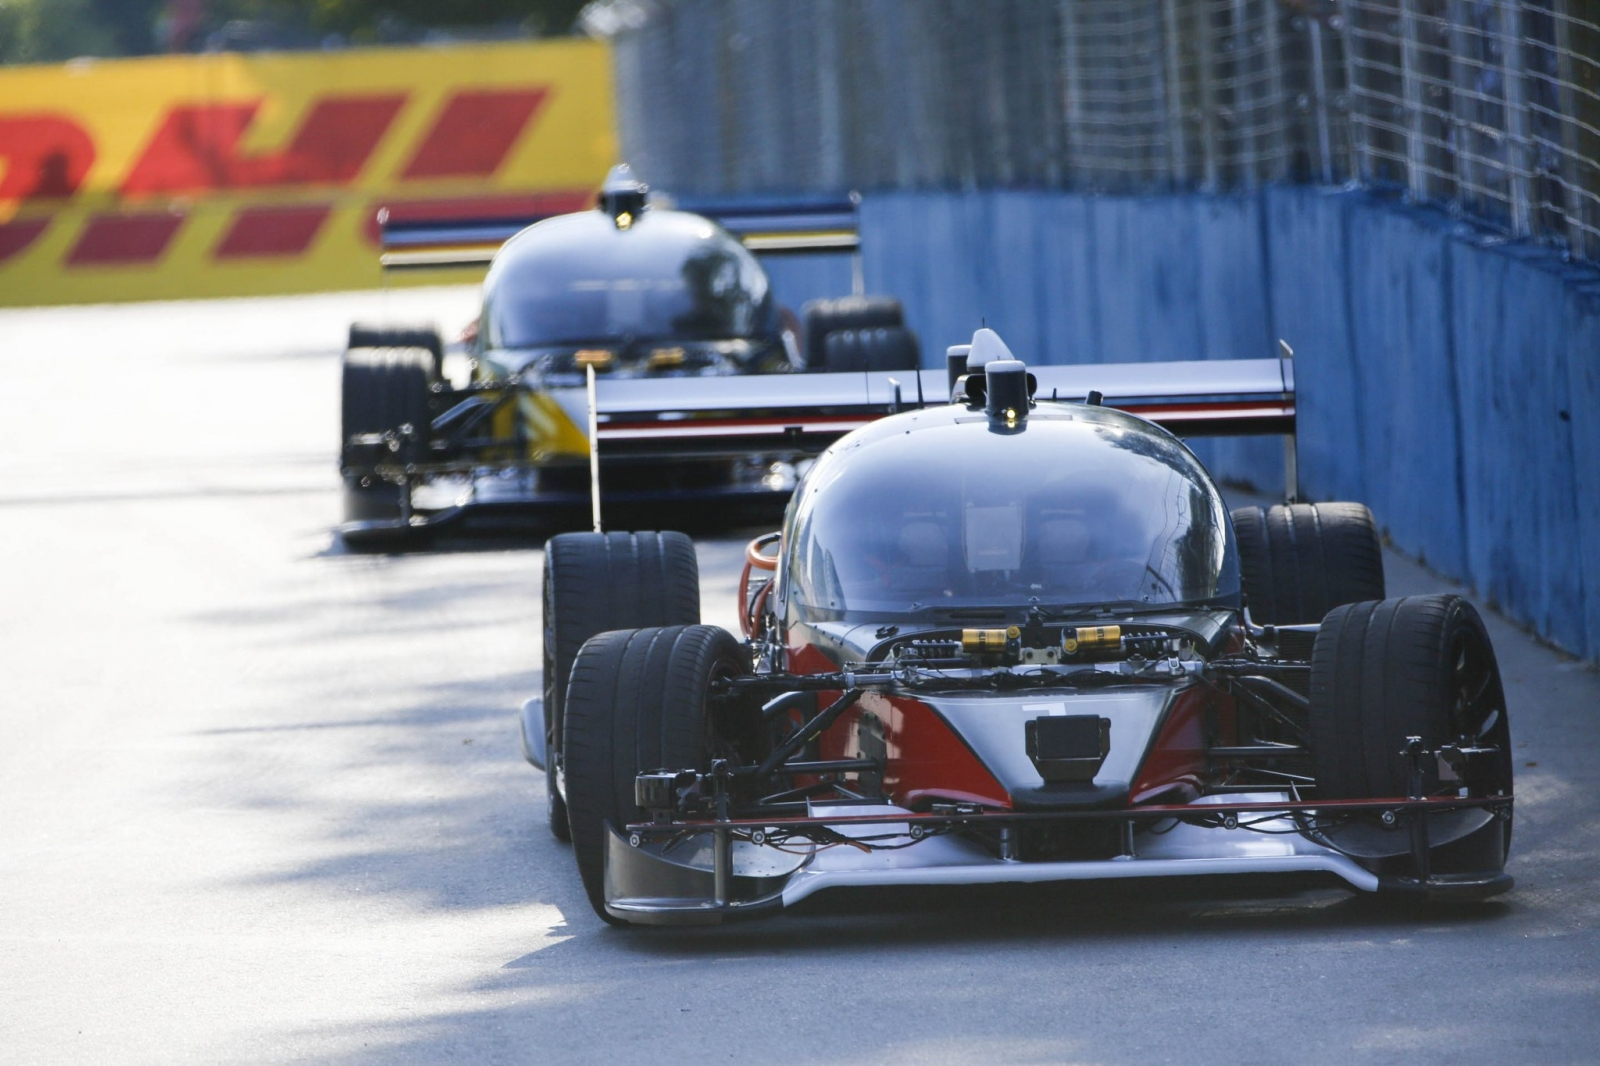 RoboRace shows off driverless cars at FormulaE